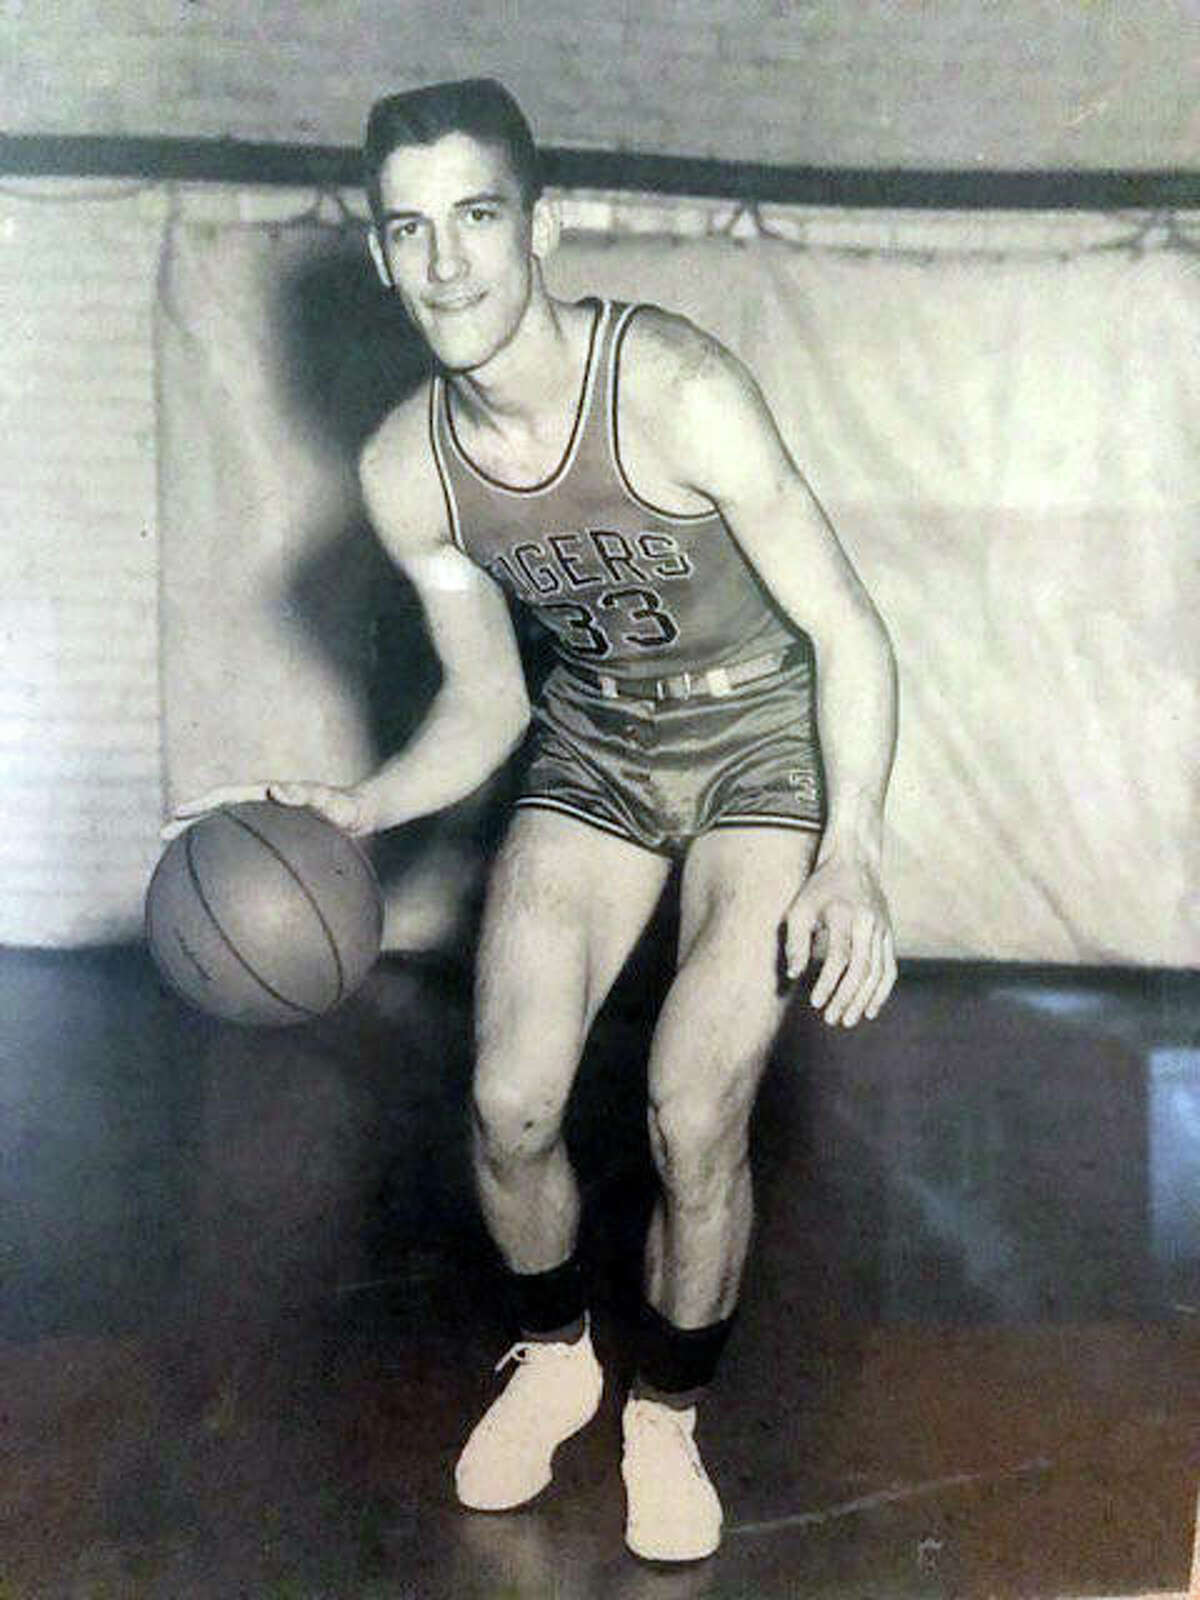 Edwardsville graduate Don Ohl was an All-State player for EHS during his senior season in 1954.